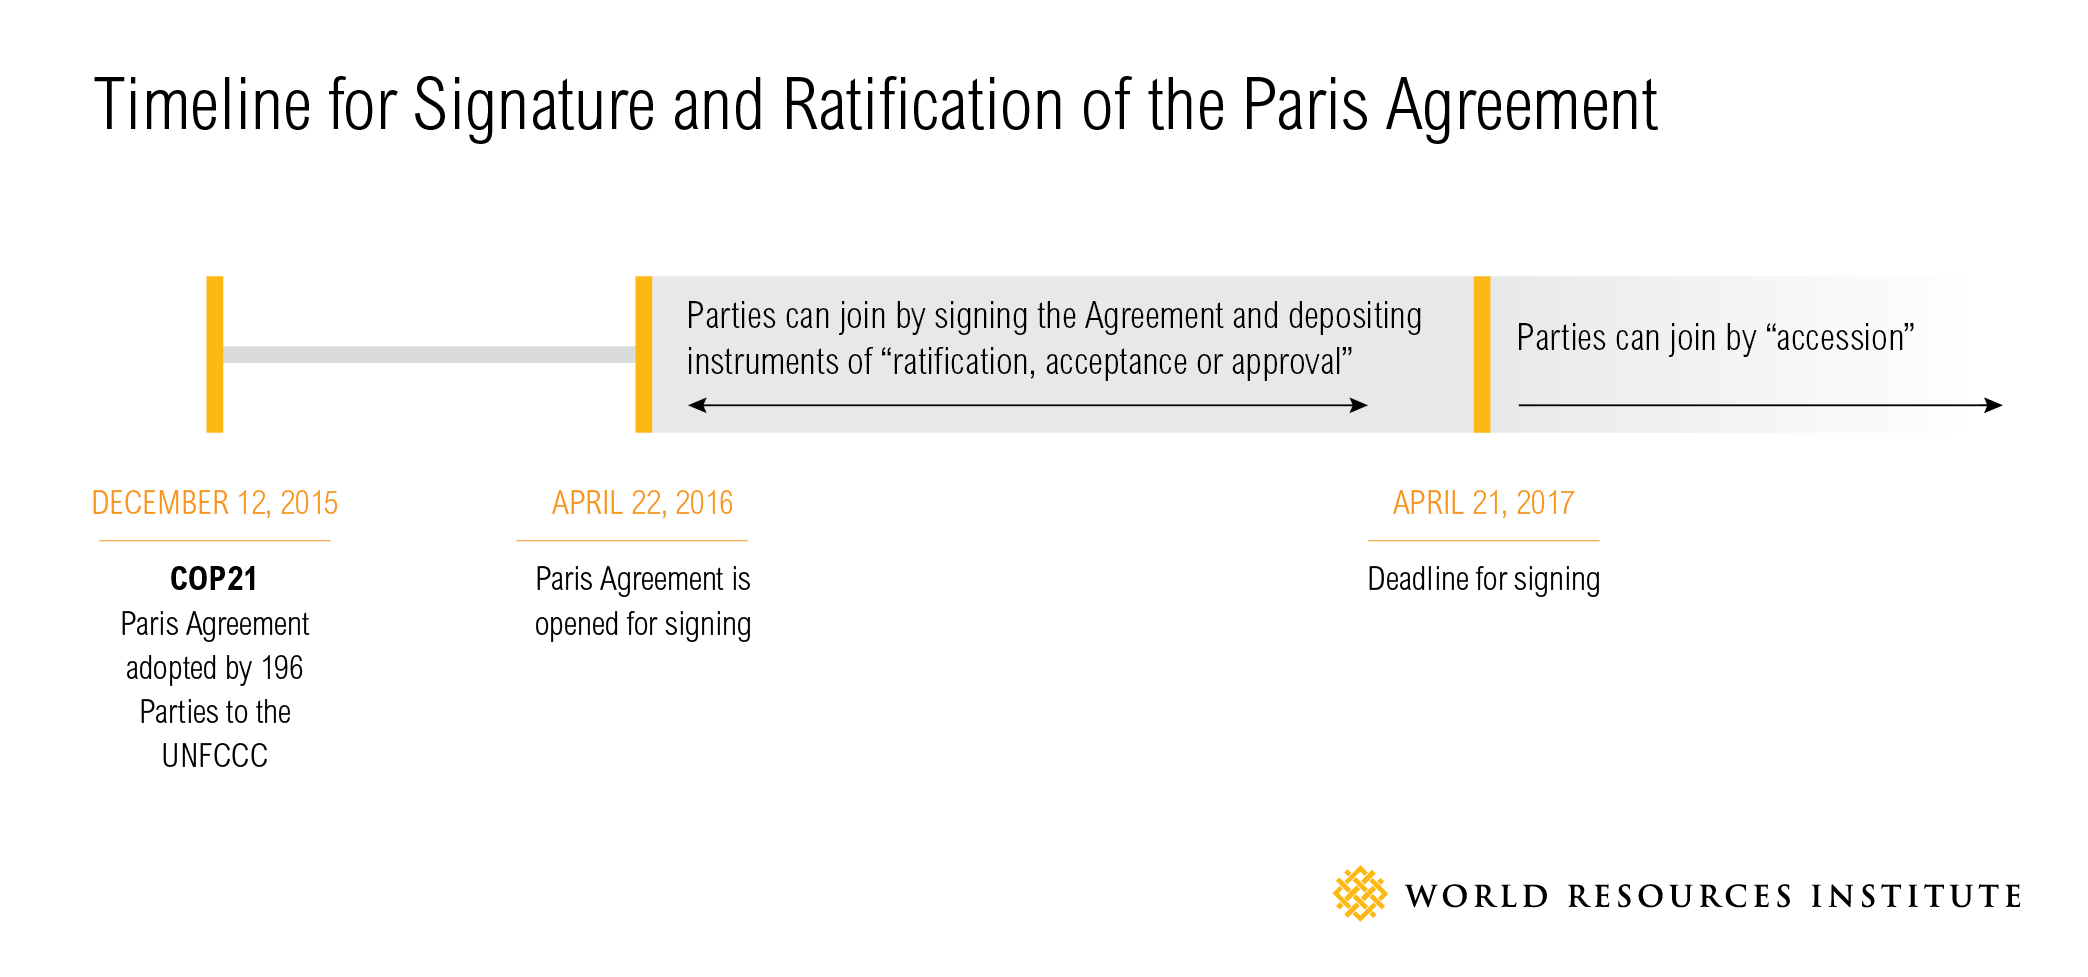 After Cop21 What Needs To Happen For The Paris Agreement To Take